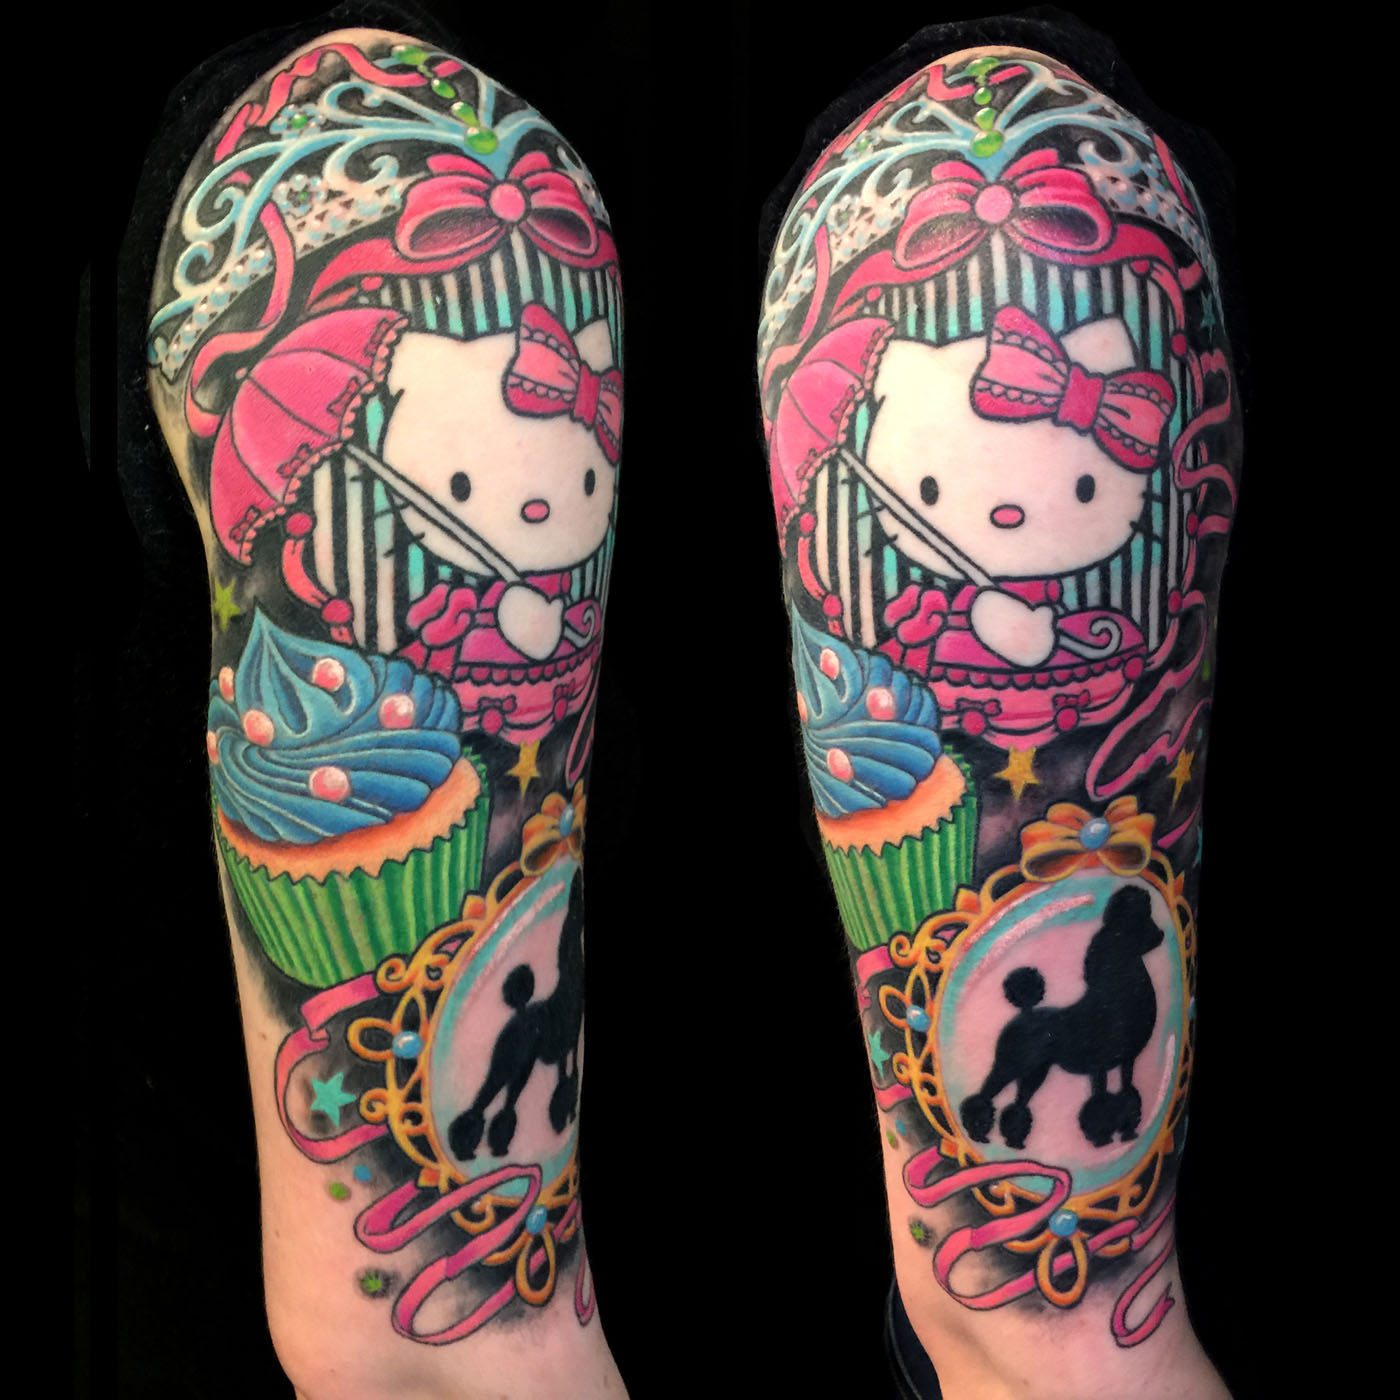 14a4a56870f0f Arm Pets Tattoo - Slave to the Needle